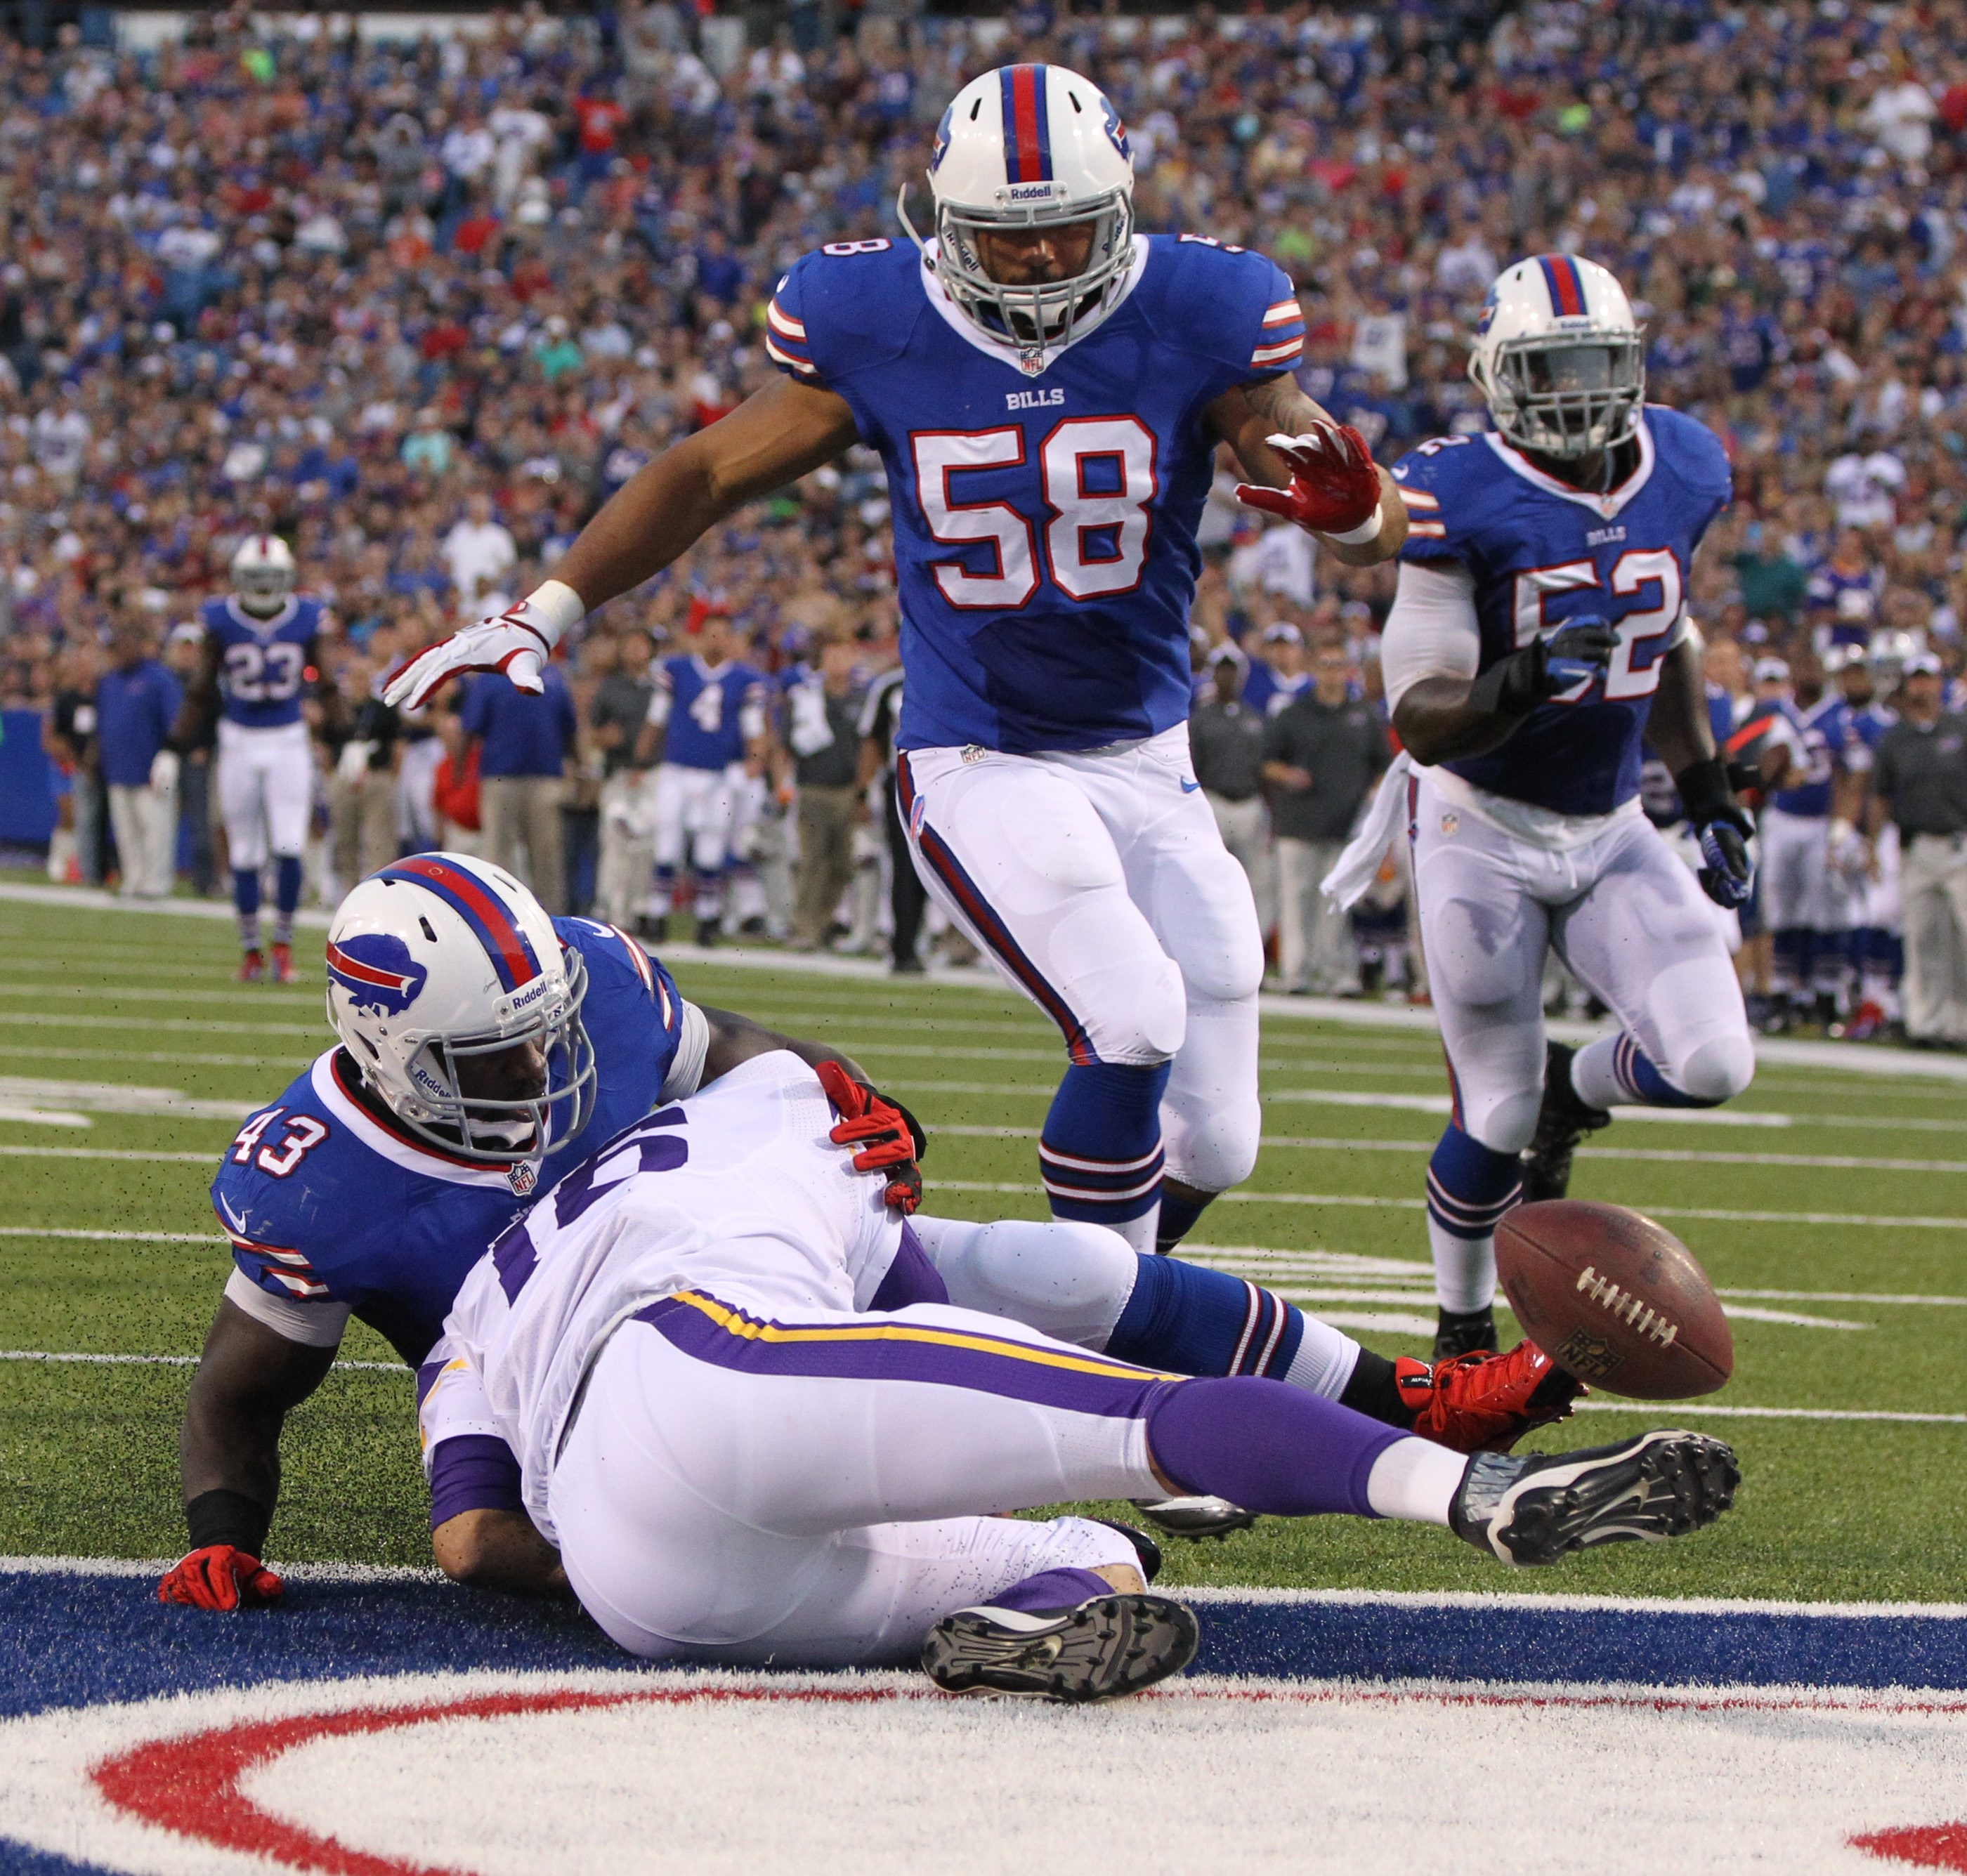 Vikings quarterback Matt Cassel fumbles the snap and Bills linebacker Bryan Scott keeps Cassel pinned down while Bills defensive end Jamie Blatnick comes in to scoop up the ball for a touchdown in the second quarter.